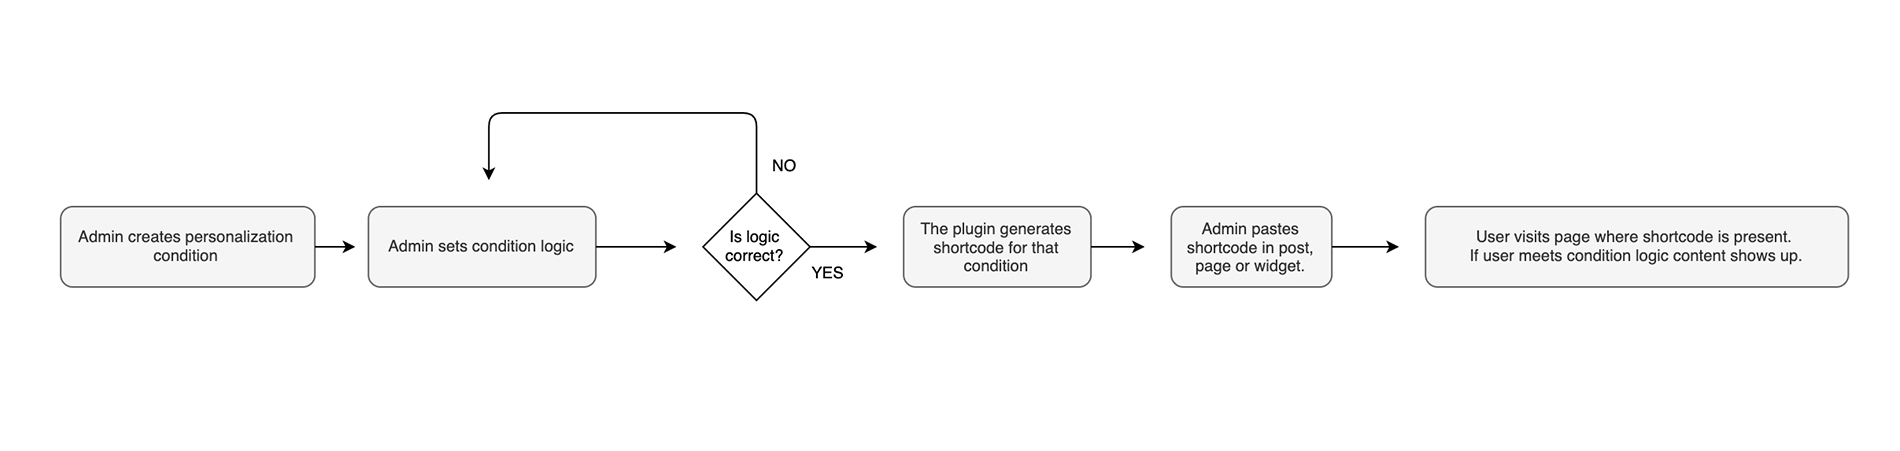 personalization condition user flow